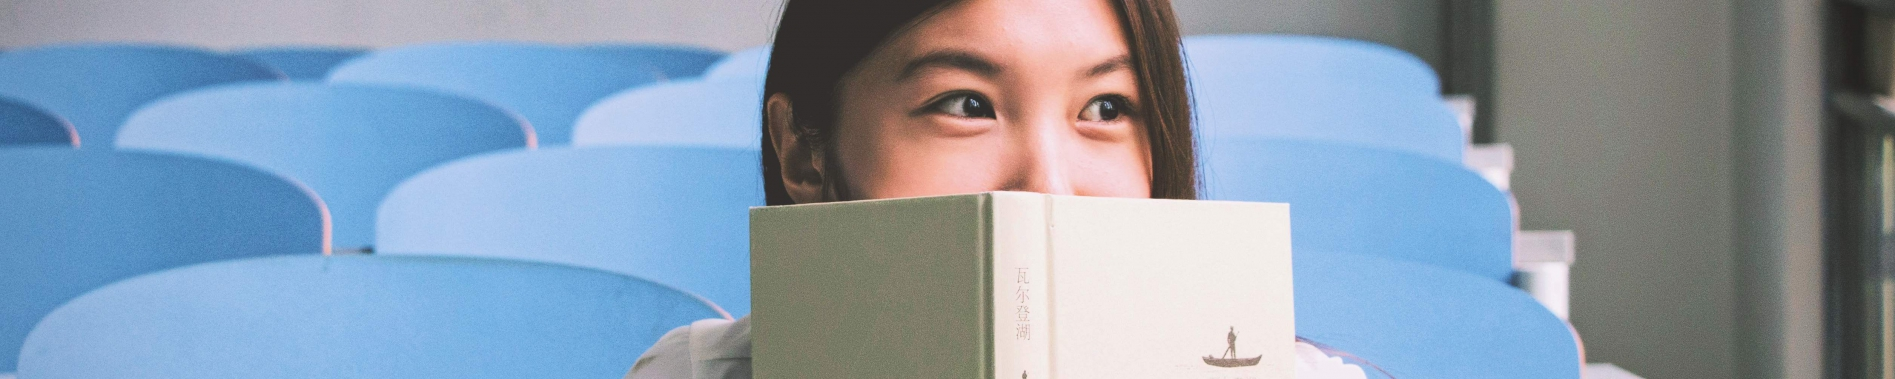 young student sitting in an empty classroom hiding her bottom part of face behind a book